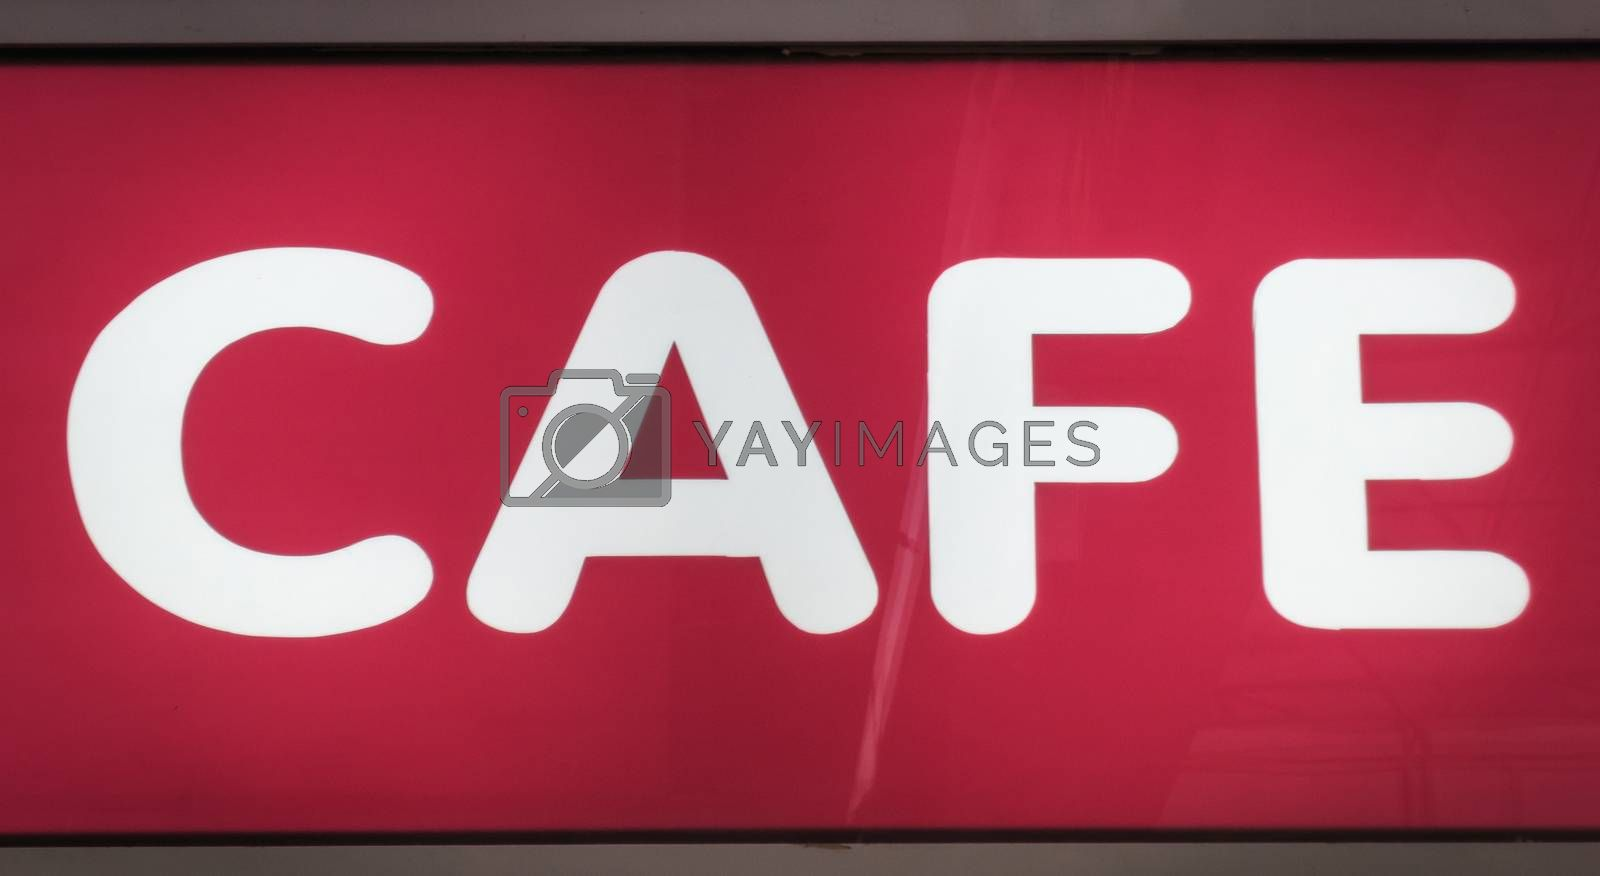 Cafe sign neon box vintage processing.